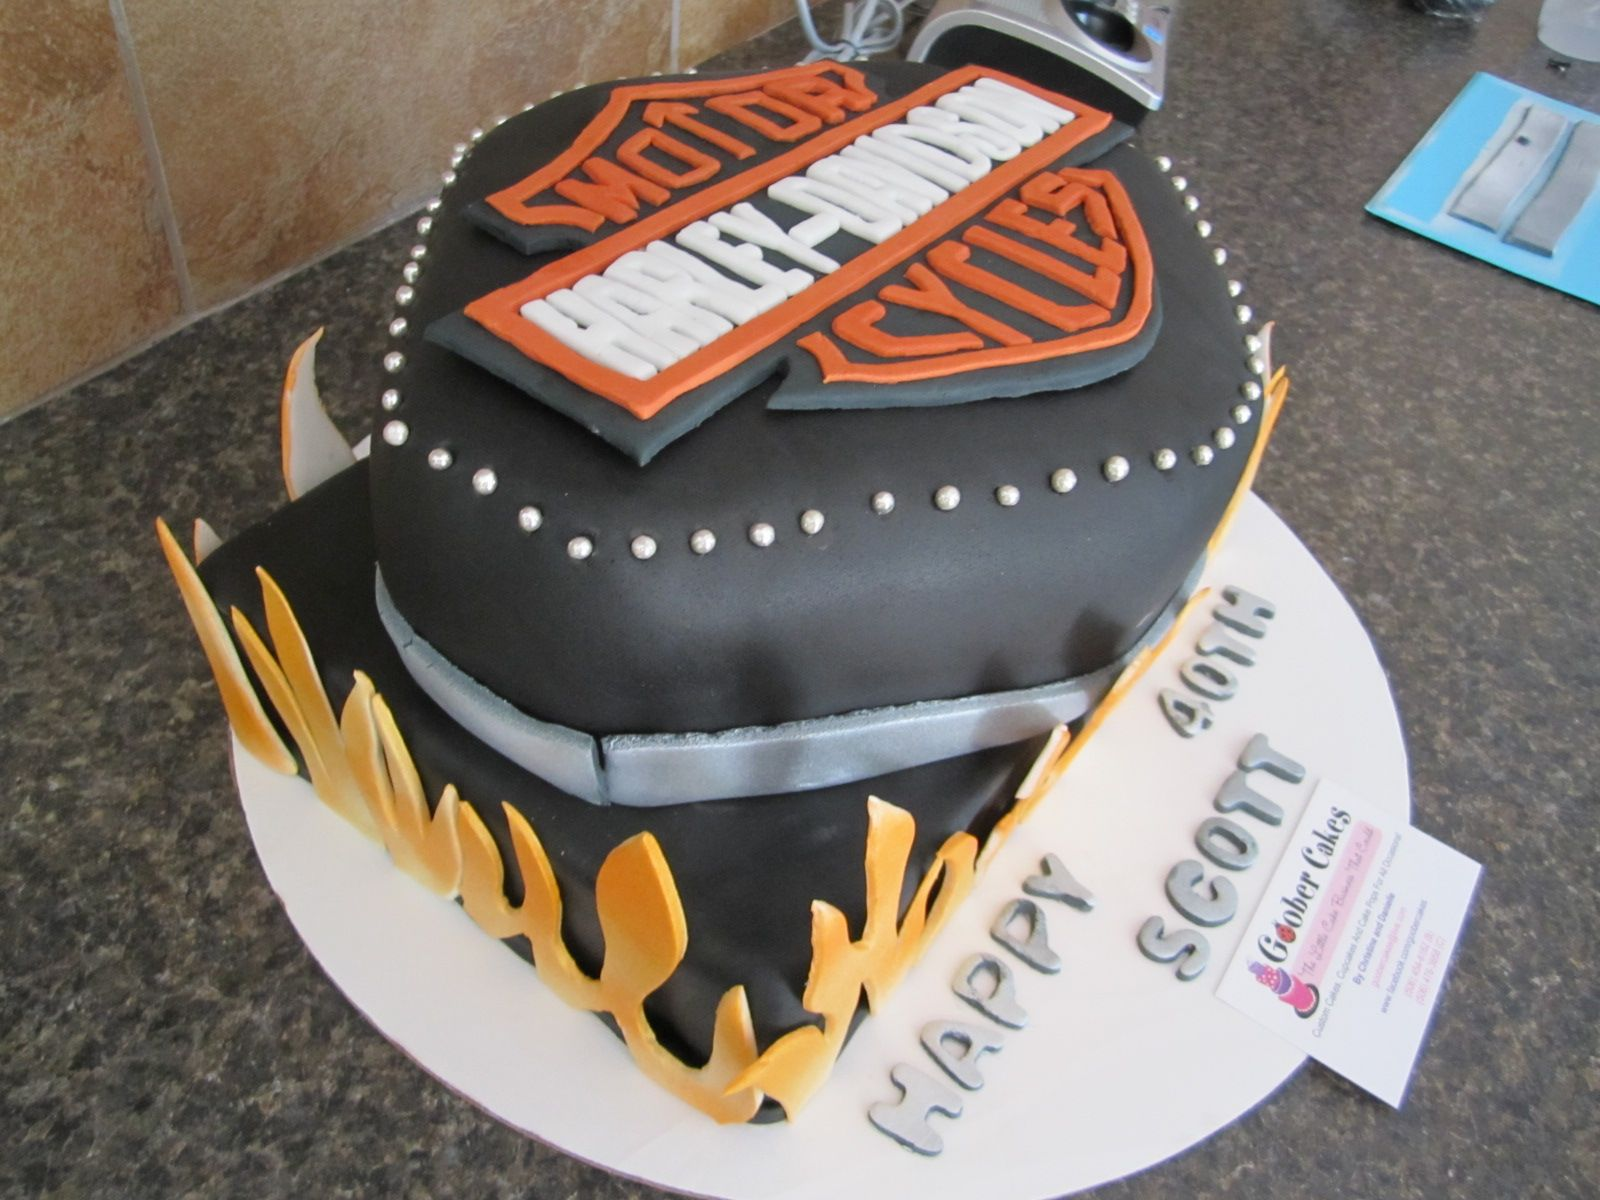 Harley Davidson Cake, Logo And Flames Are Hand Made And